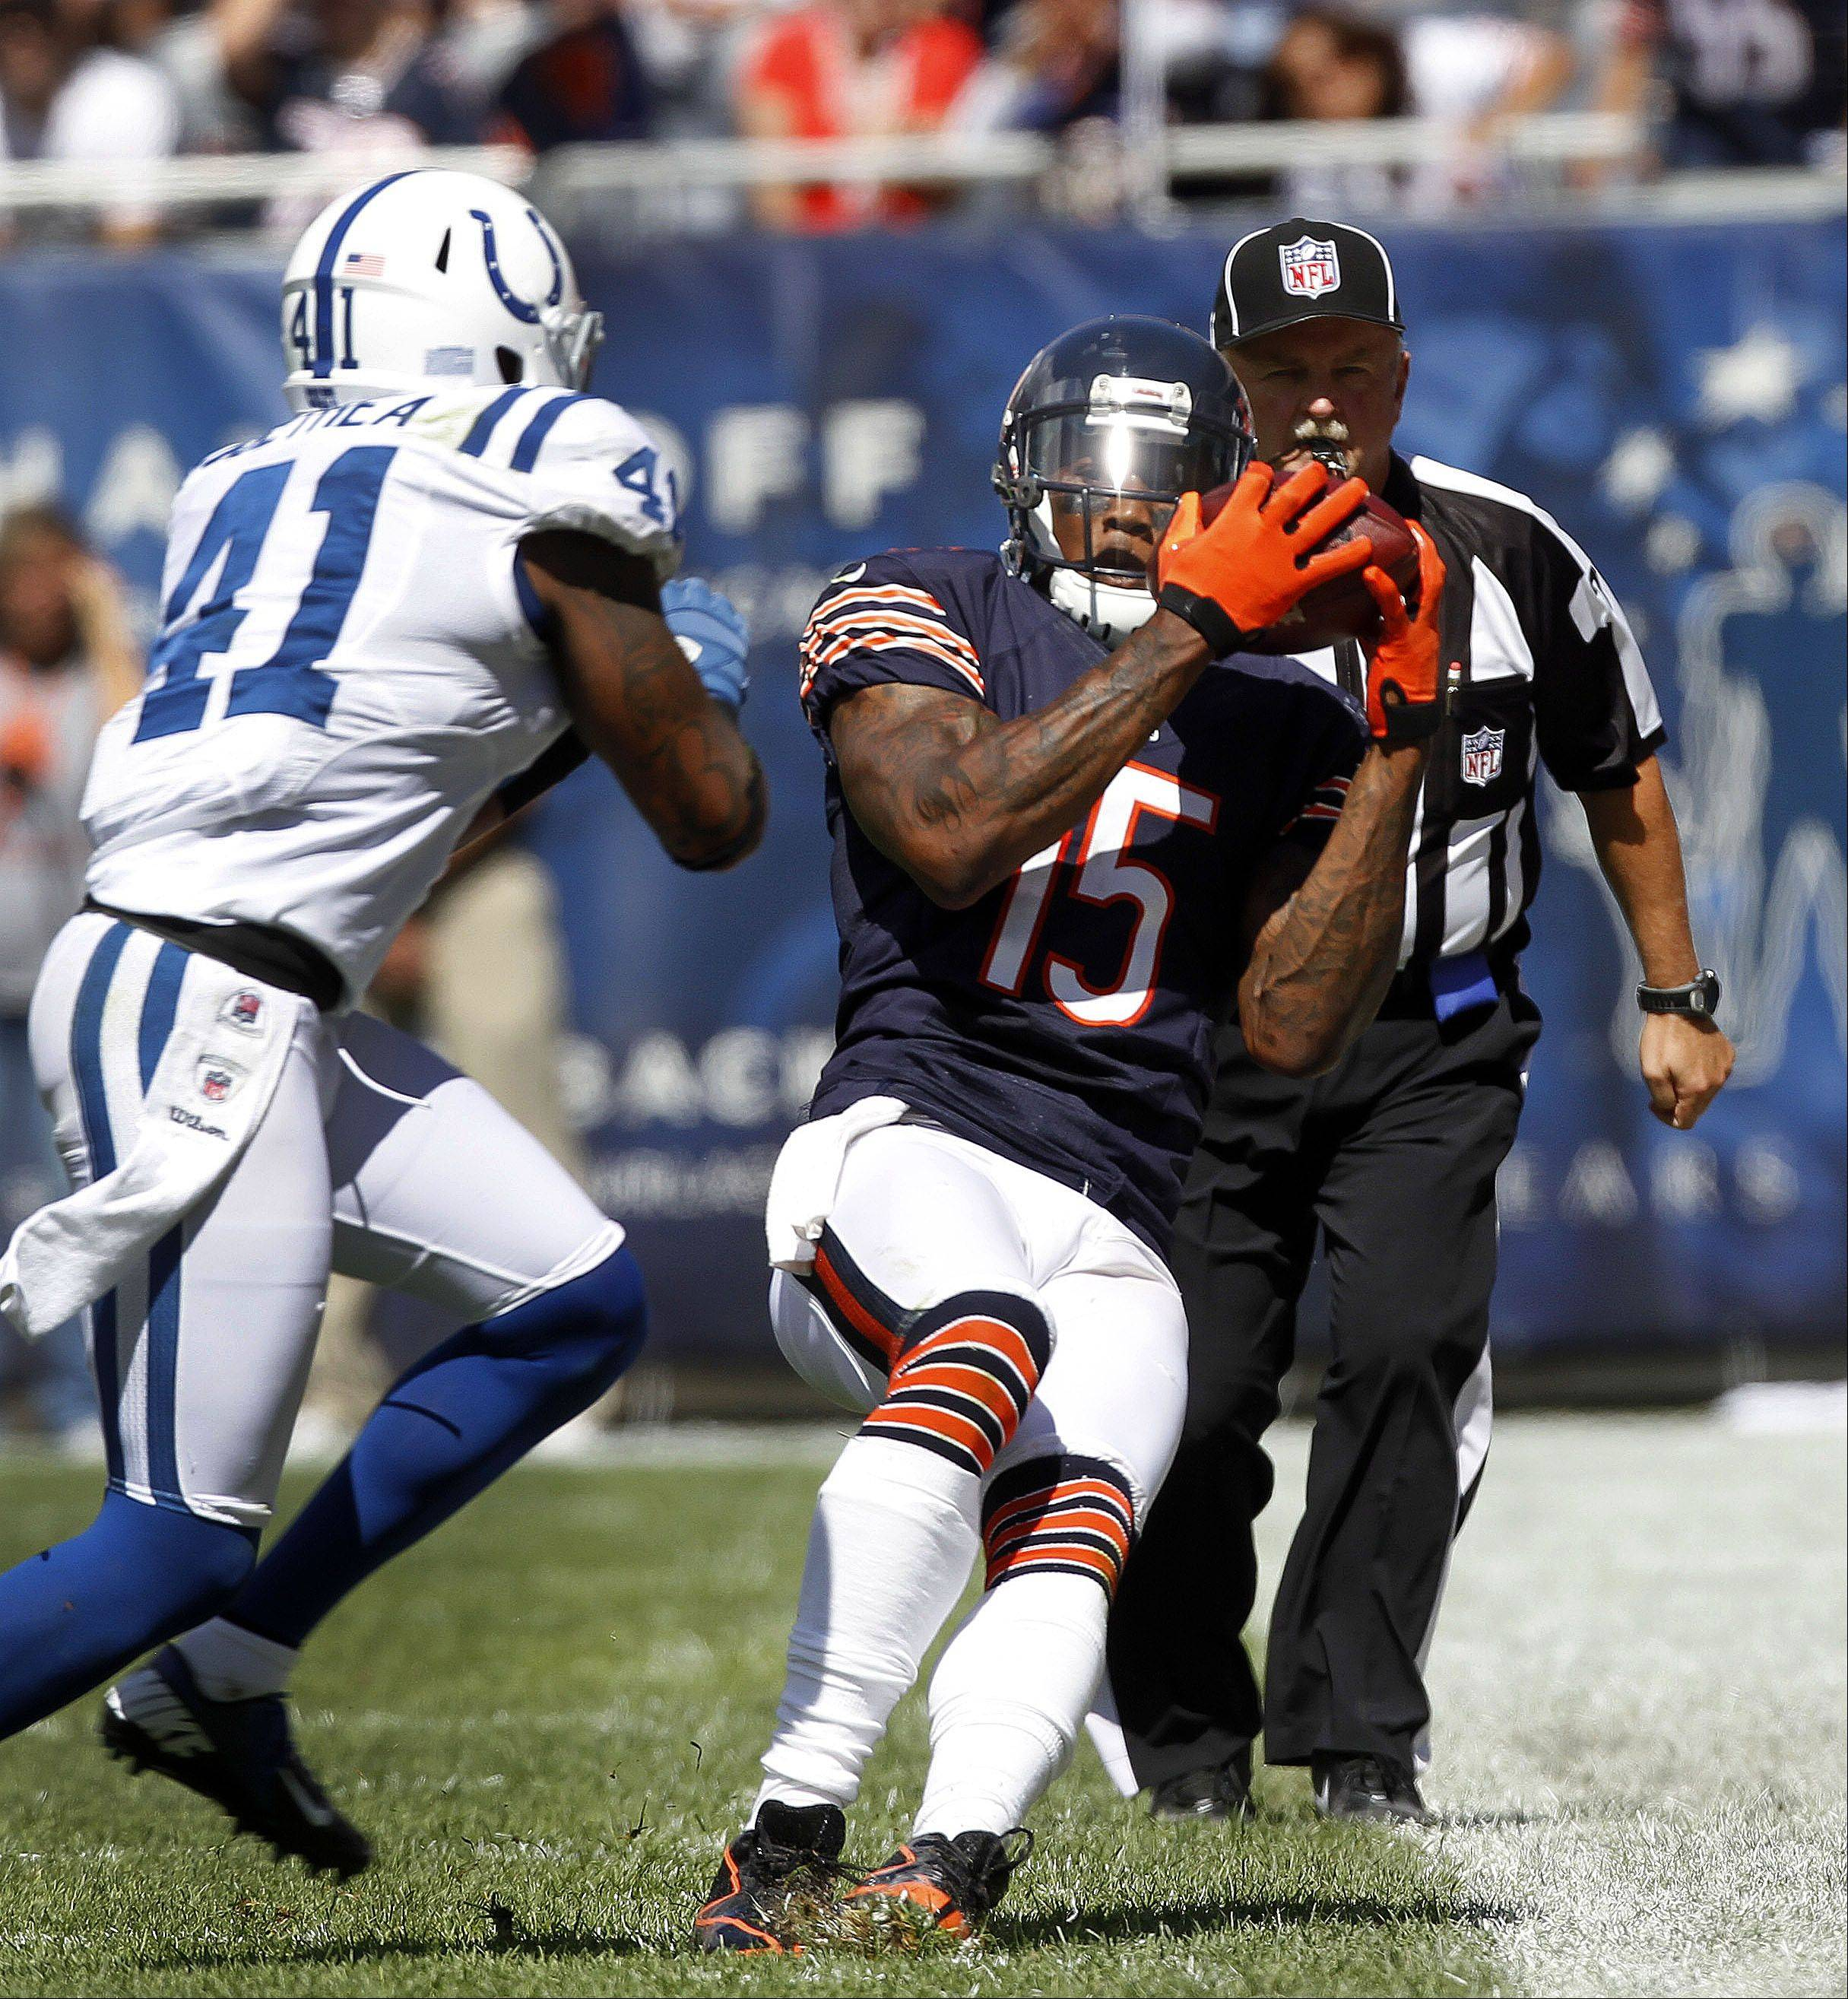 Chicago Bears wide receiver Brandon Marshall makes a sideline catch during the Bears season opener.